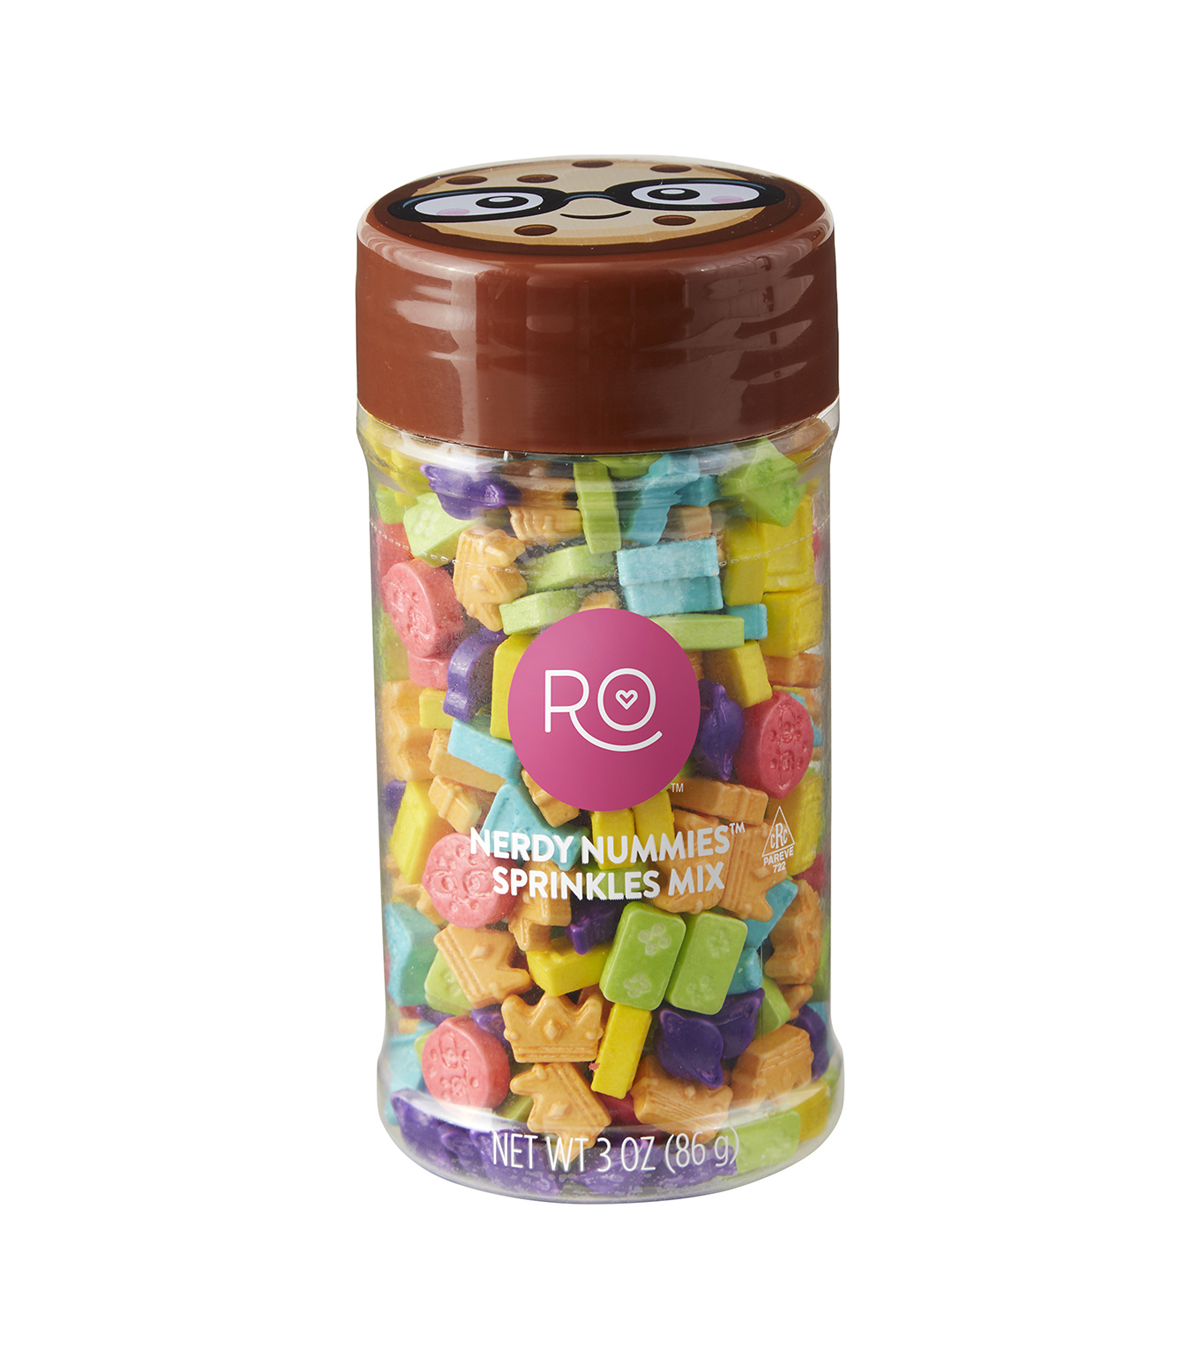 Rosanna Pansino By Wilton 3oz Nerdy Nummies Sprinkles Mix